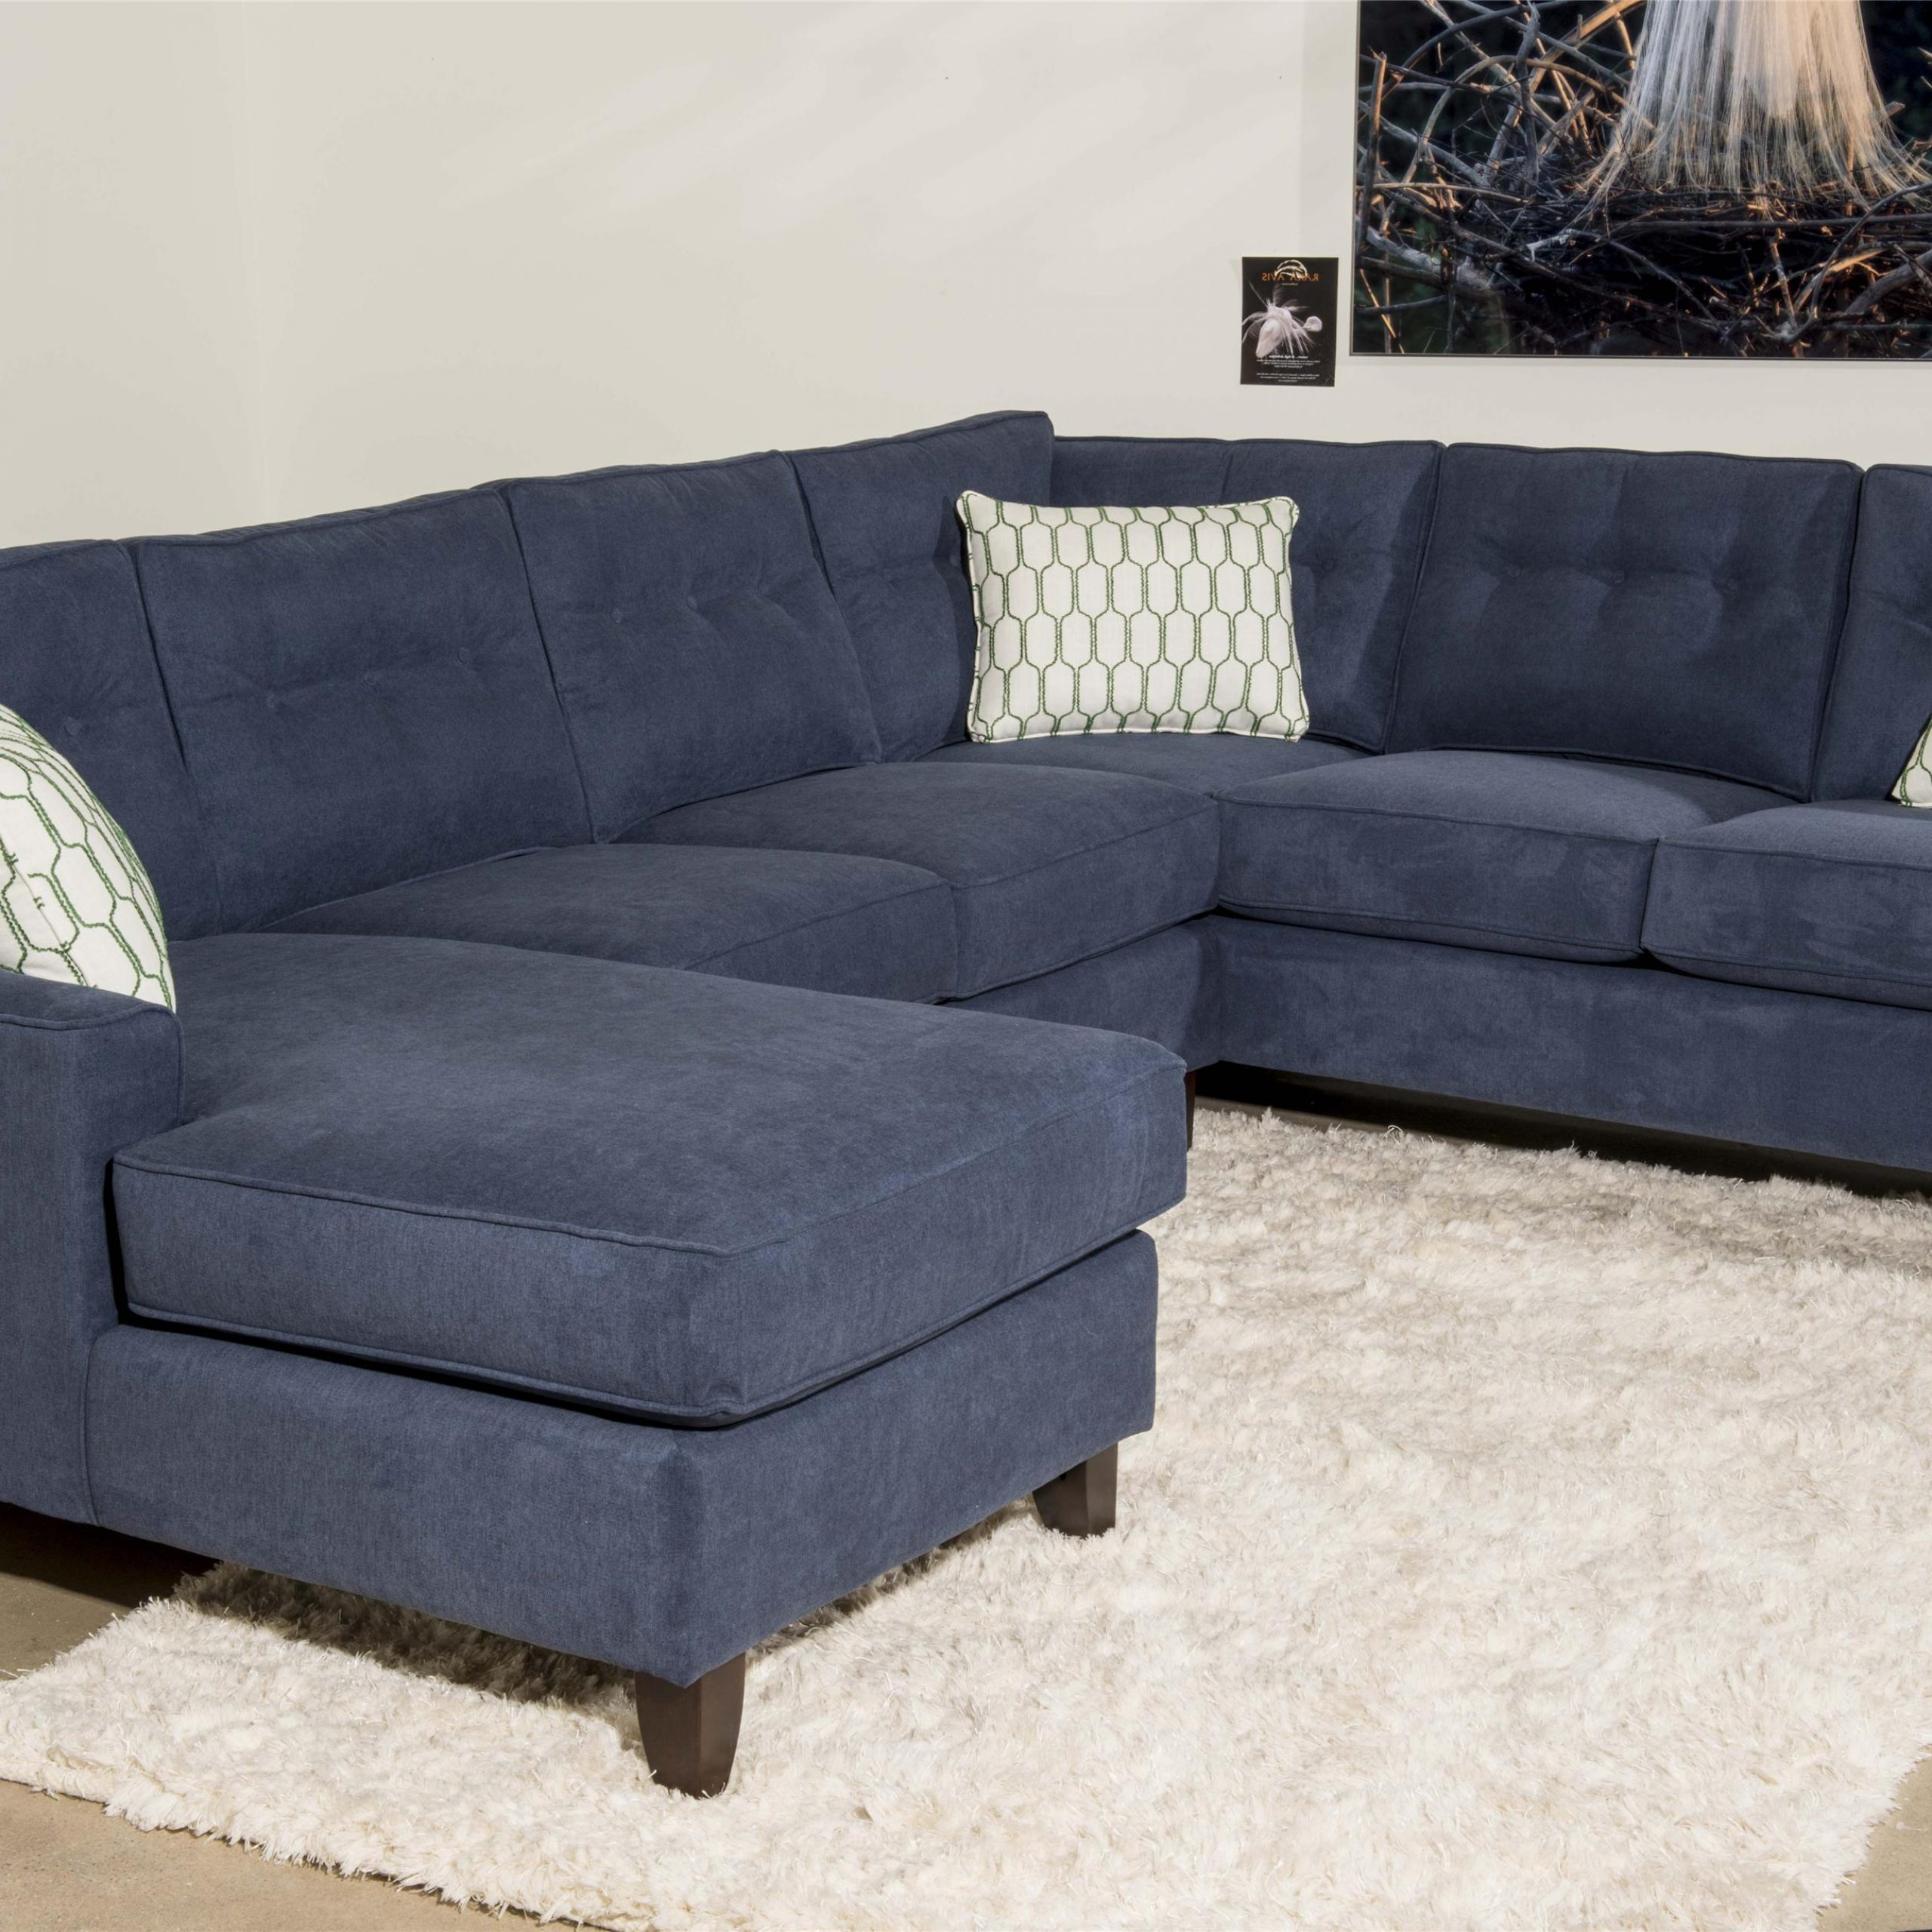 Klaussner Audrina K31600L Crns+Als+R Chase Contemporary 3 Within Favorite 3Pc Polyfiber Sectional Sofas (View 22 of 25)